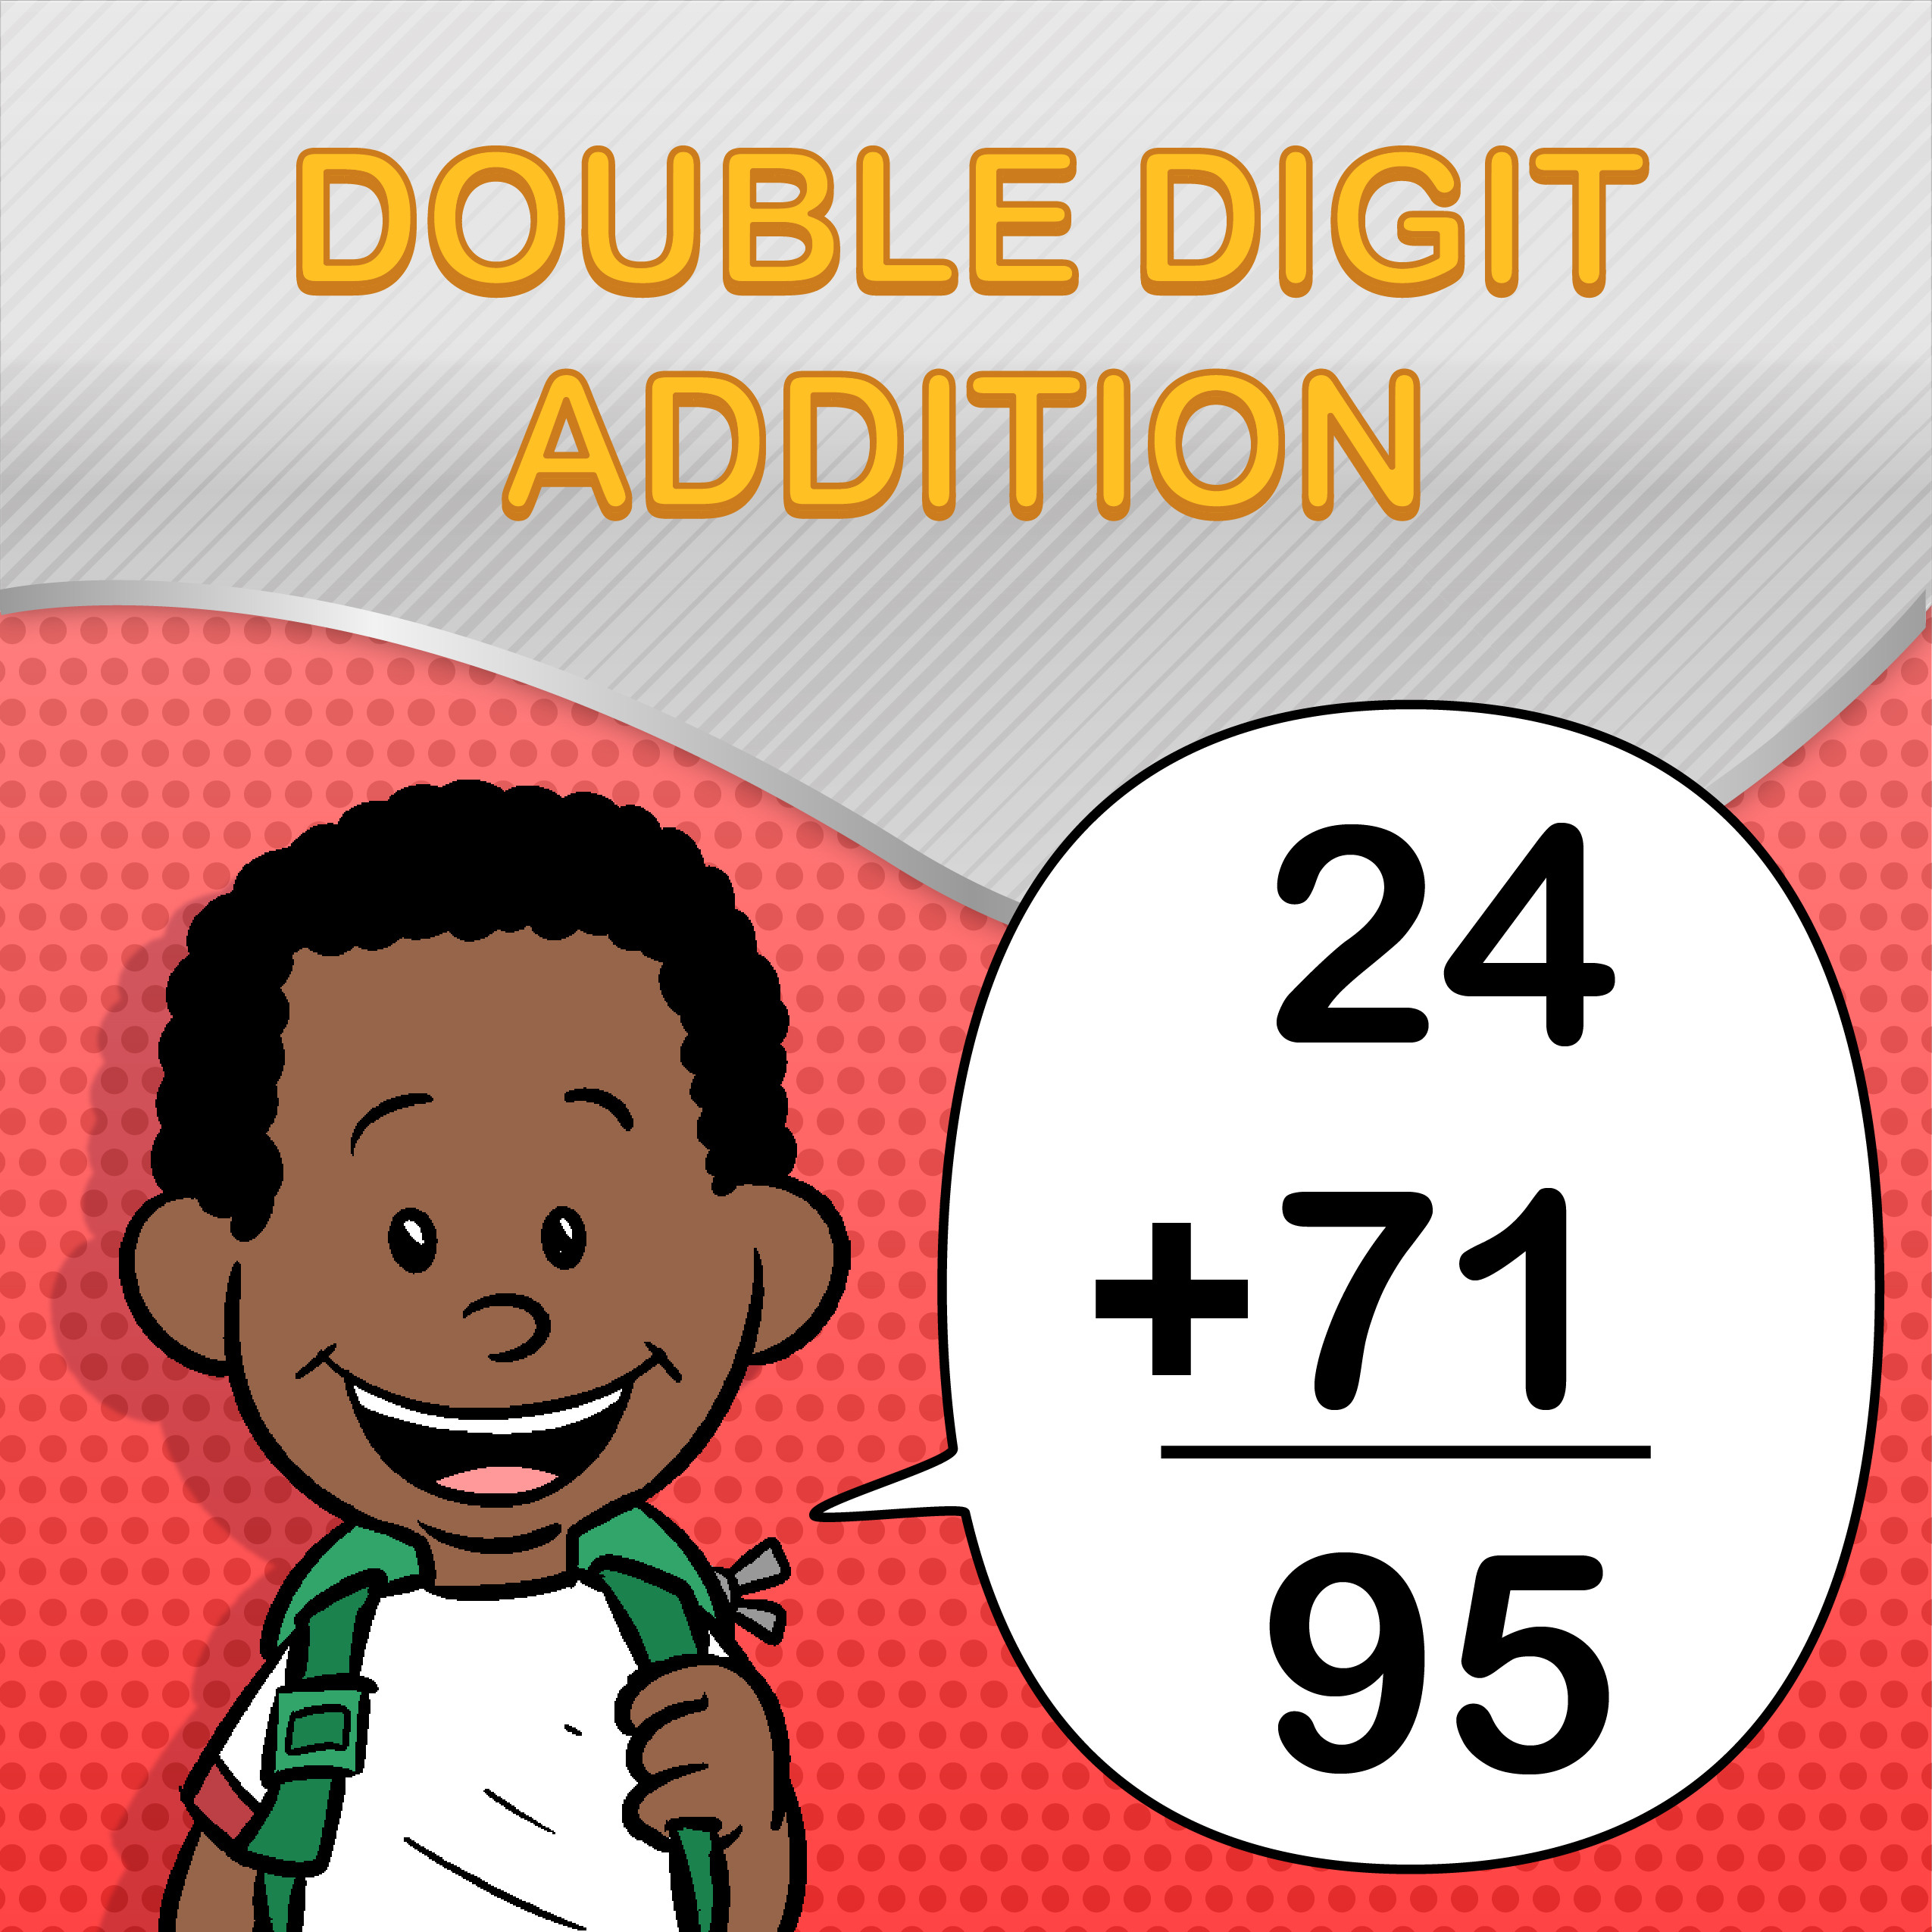 Double Digit Addition Worksheets for Kids | Printable PDFs